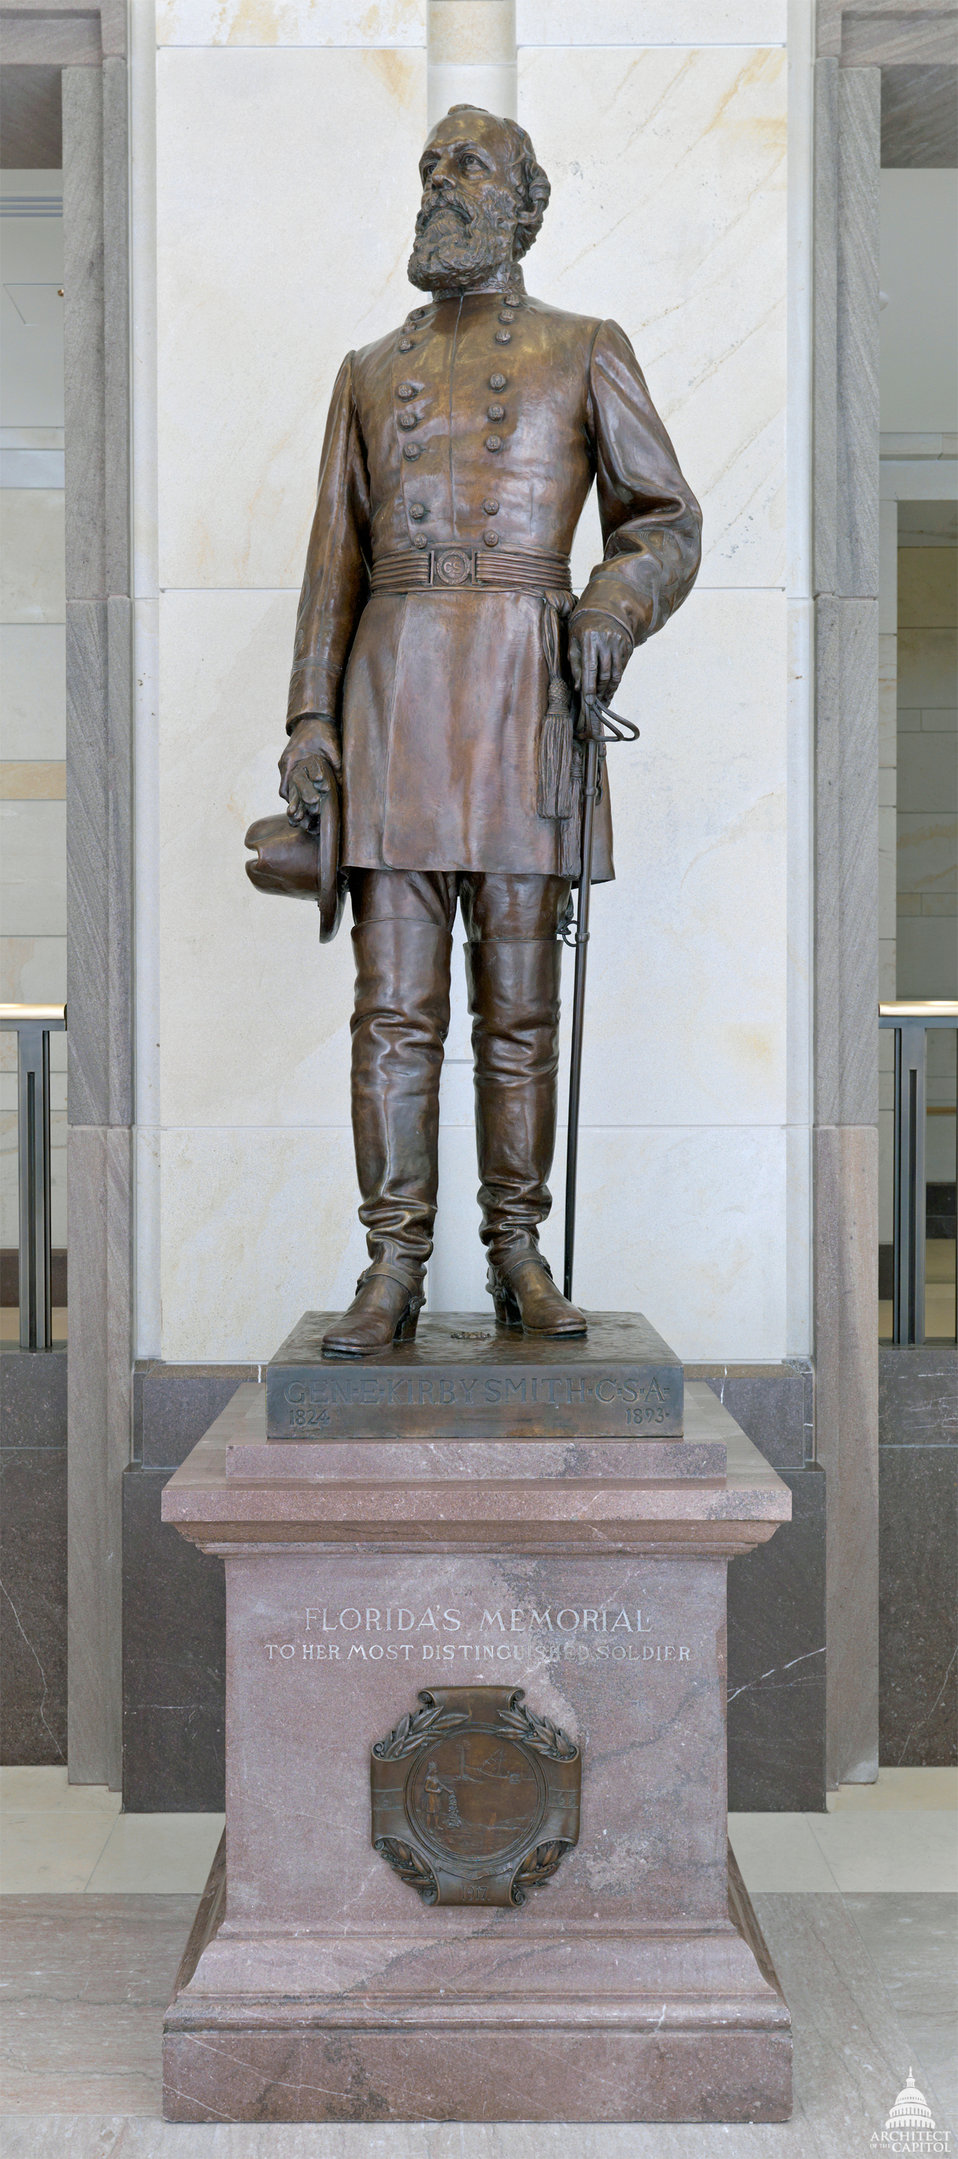 Edmund Kirby Smith Statue